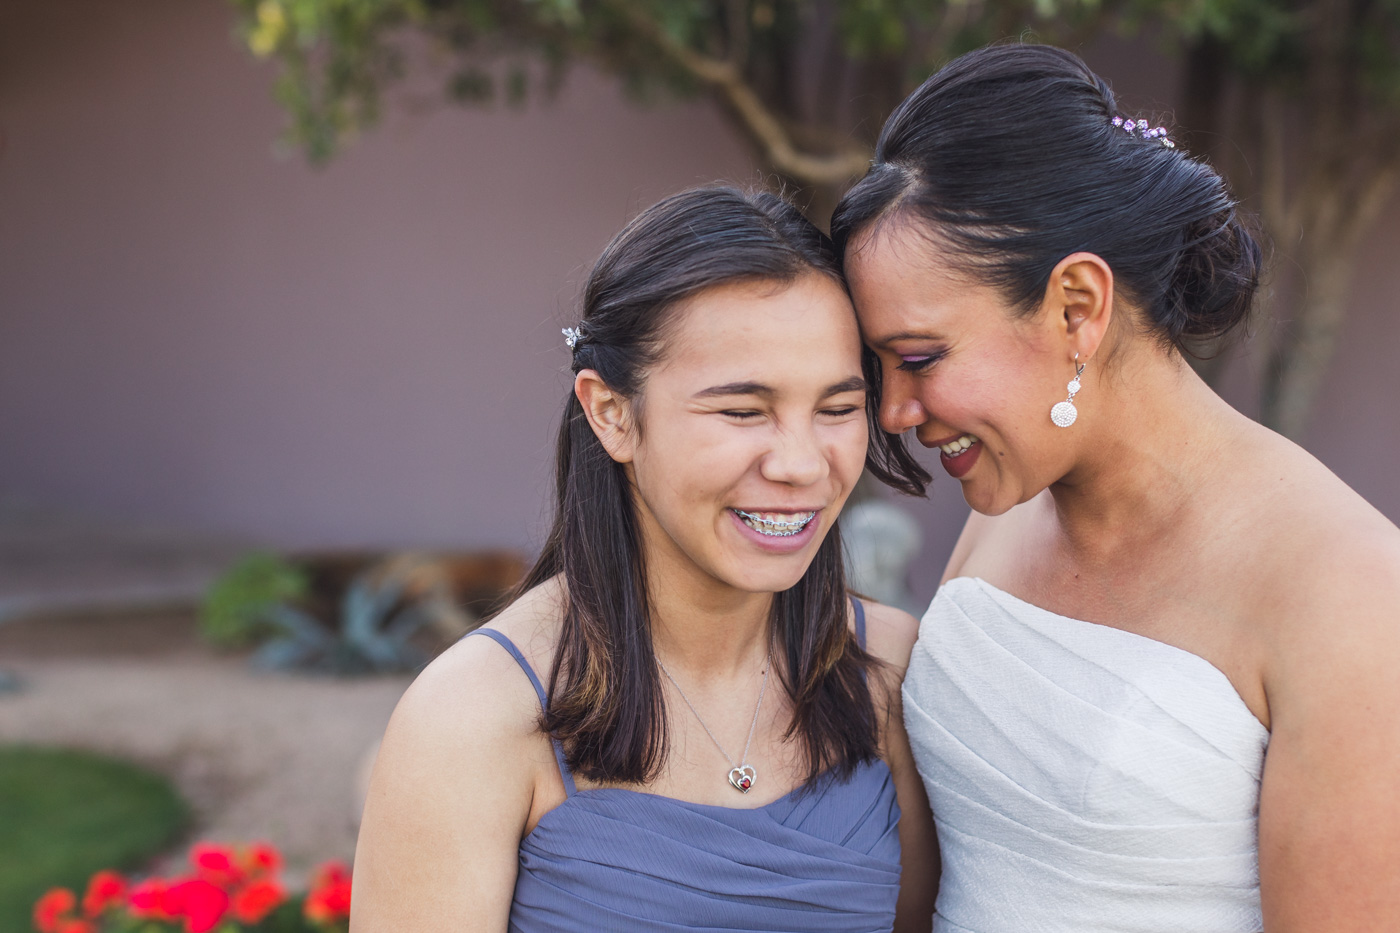 bride-and-daughter-sharing-moment